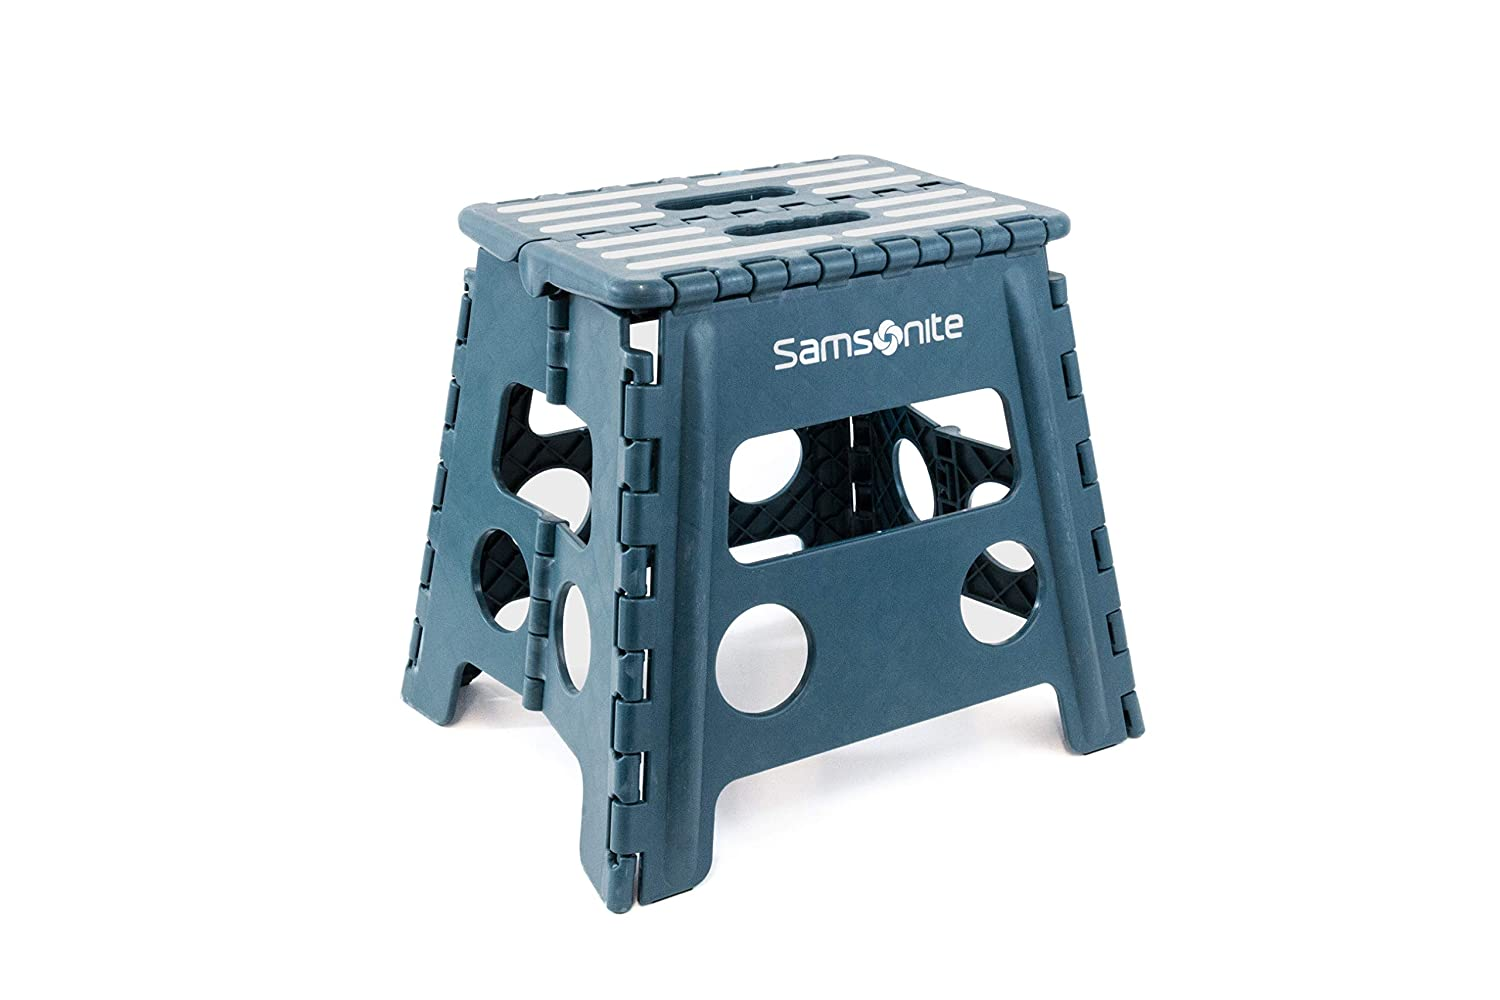 Heavy Duty Folding Step Stool 13 High Double Handle 2 Wide When Folded in Dark Teal by Vanderbilt